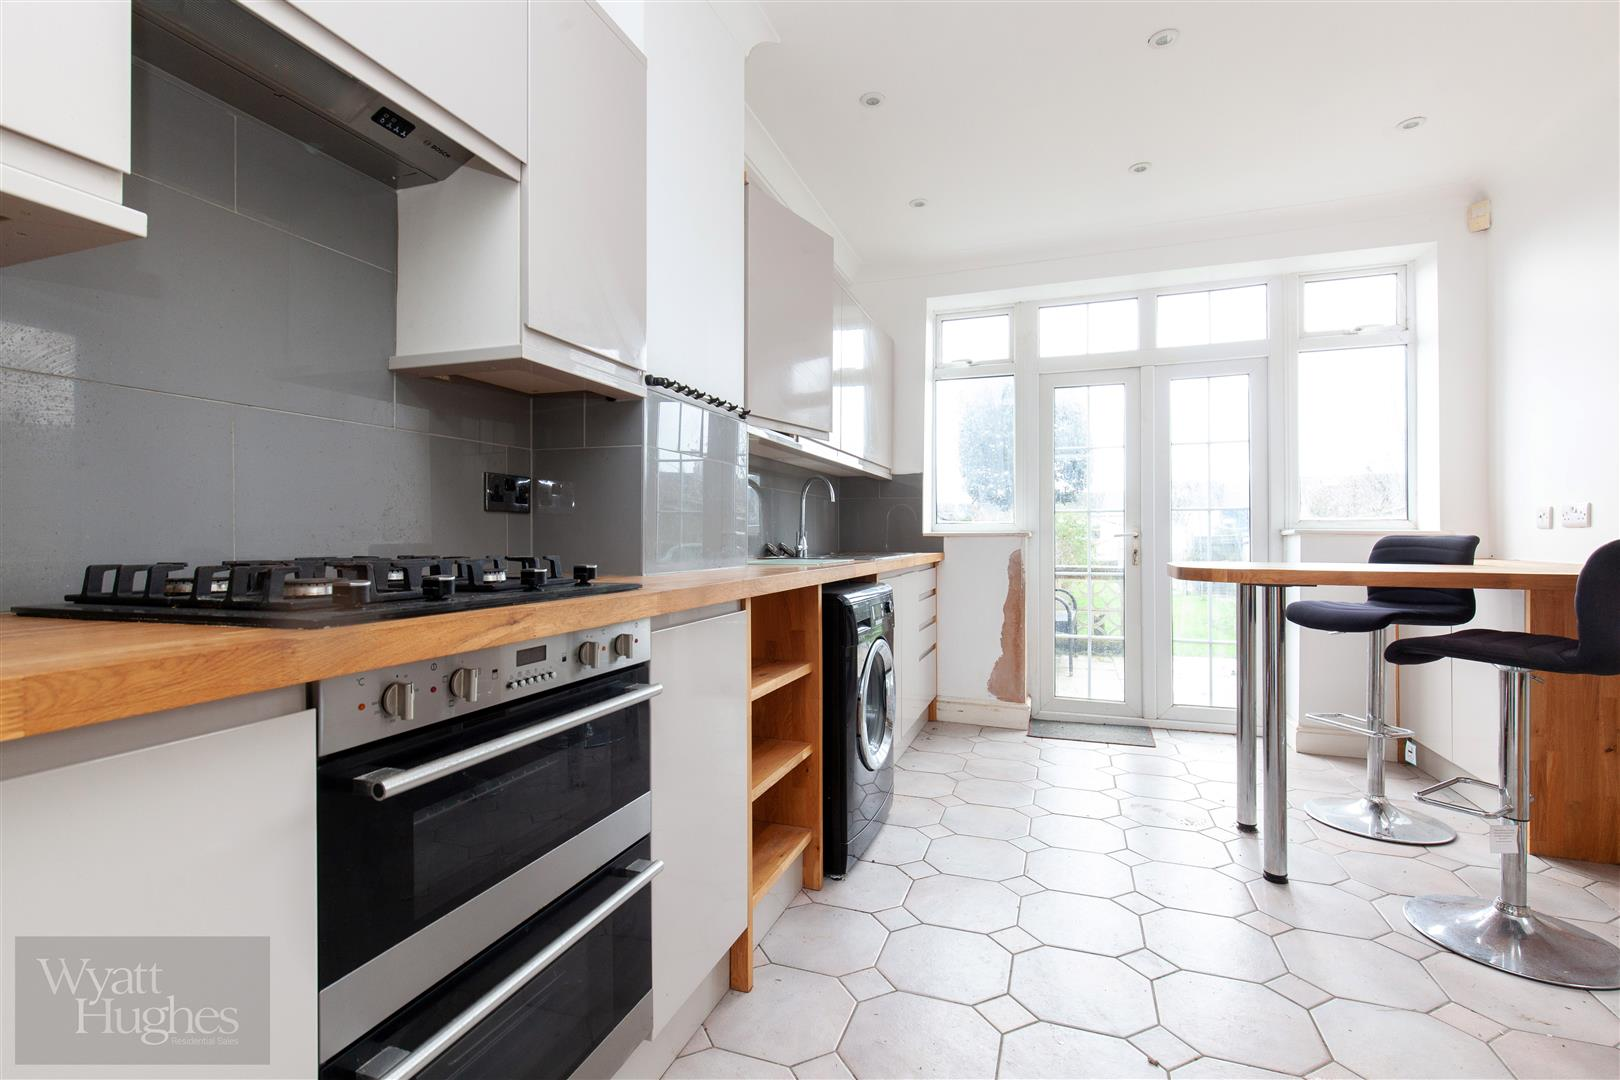 3 bed end-of-terrace-house for sale in Burry Road, St. Leonards-On-Sea 13